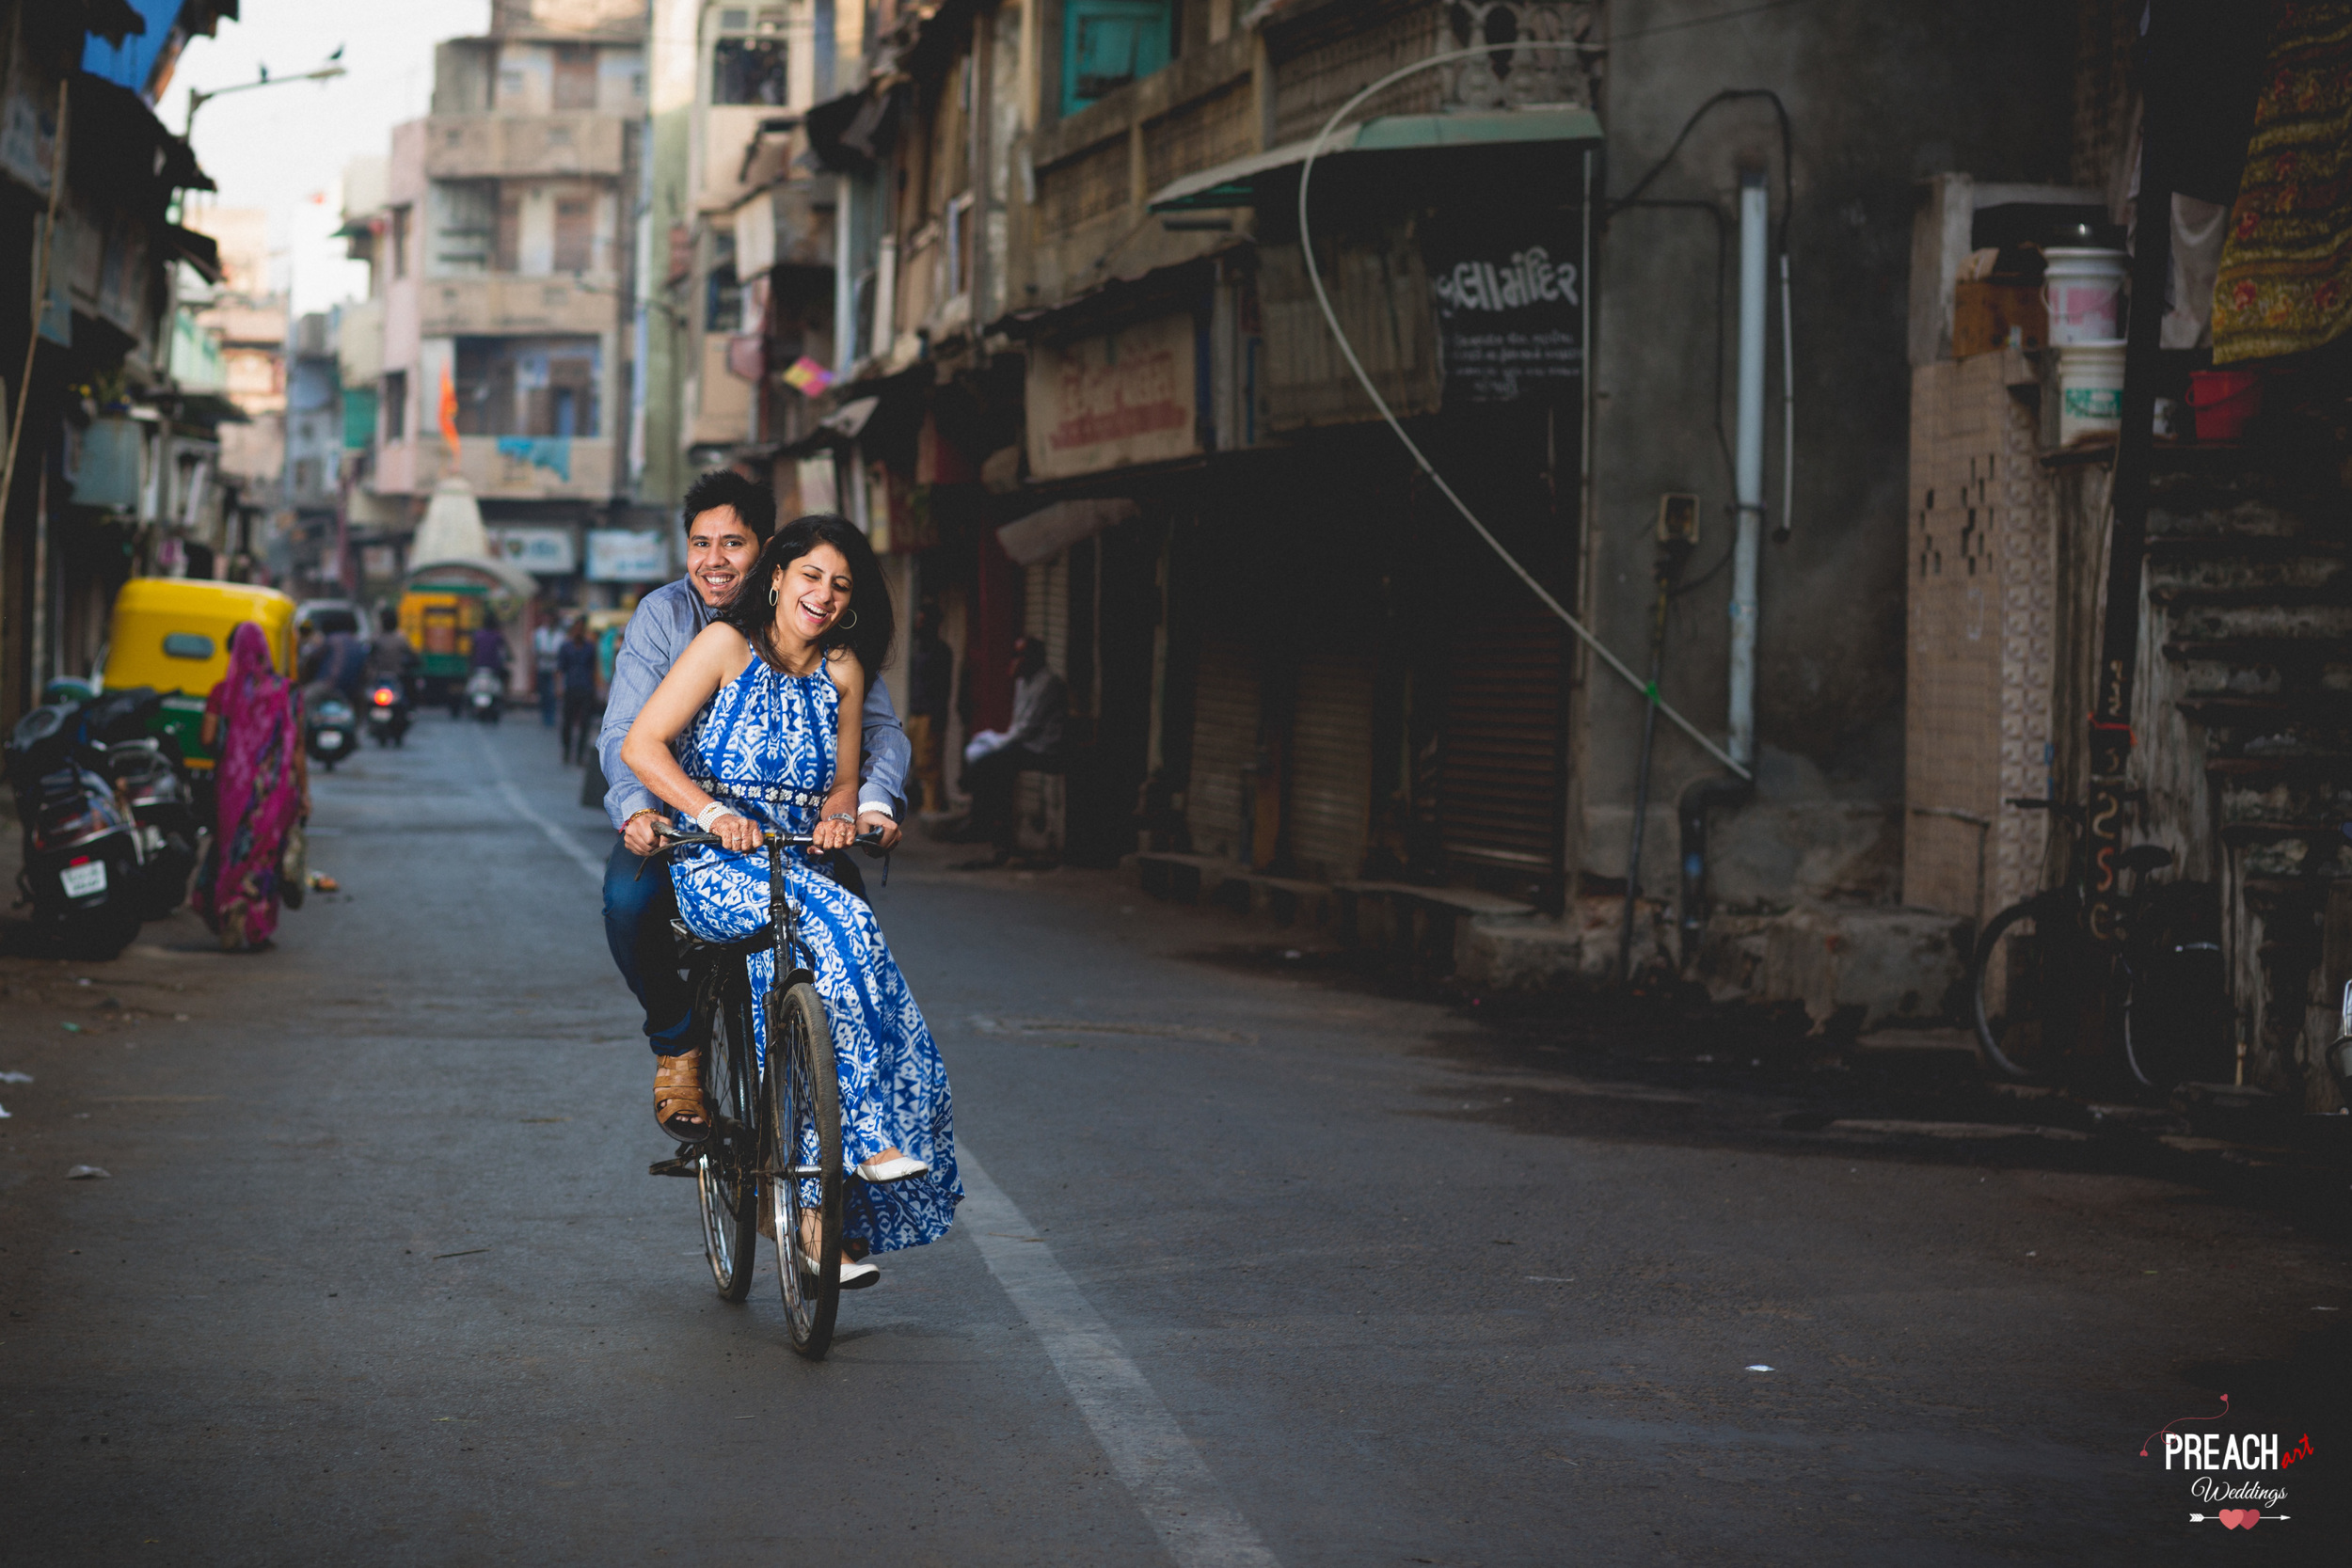 V&M_PRE-WEDDING SHOOT_AHMEDABAD OLD CITY_PREACH ART-9.jpg